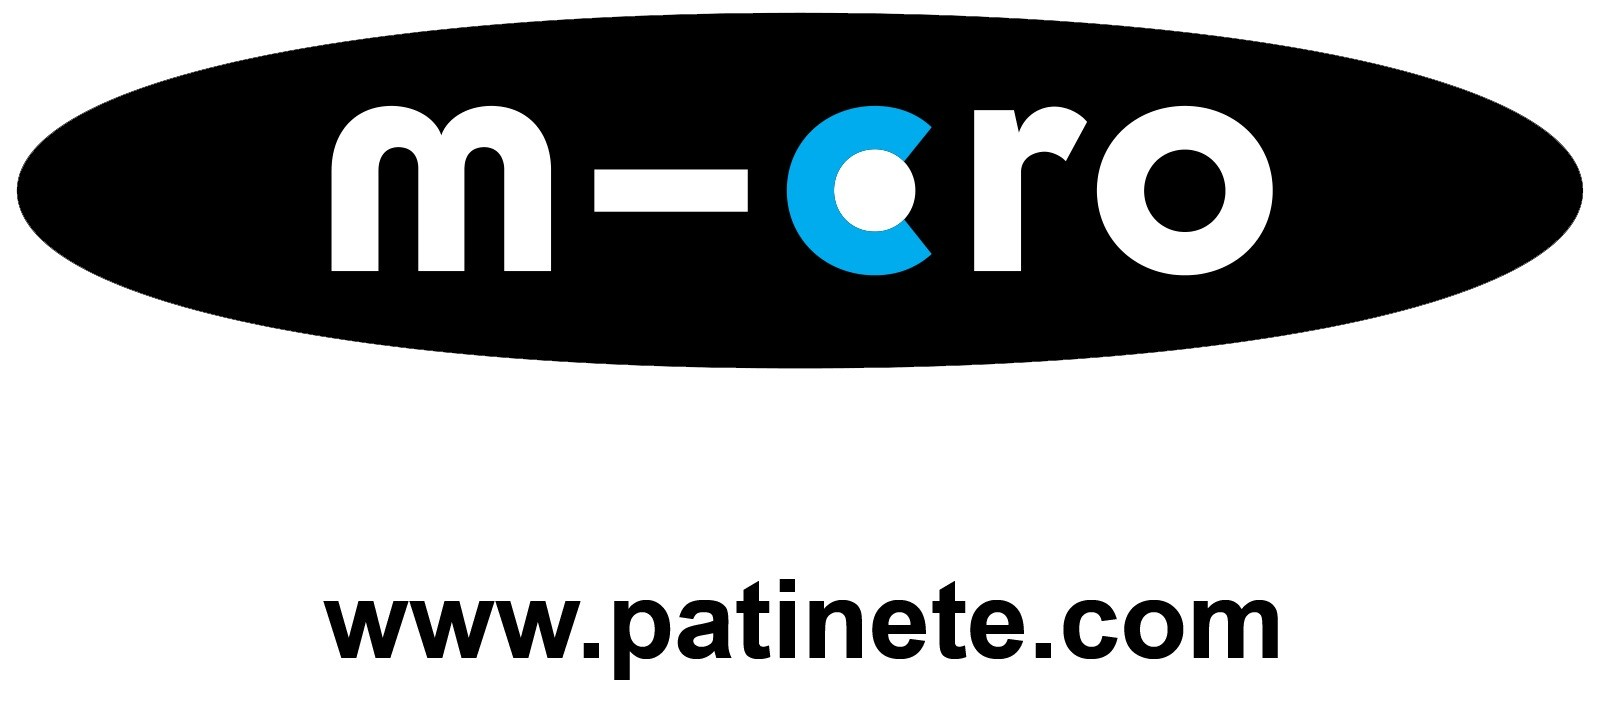 Patinetes Micro (Micro Mobility Ibérica)